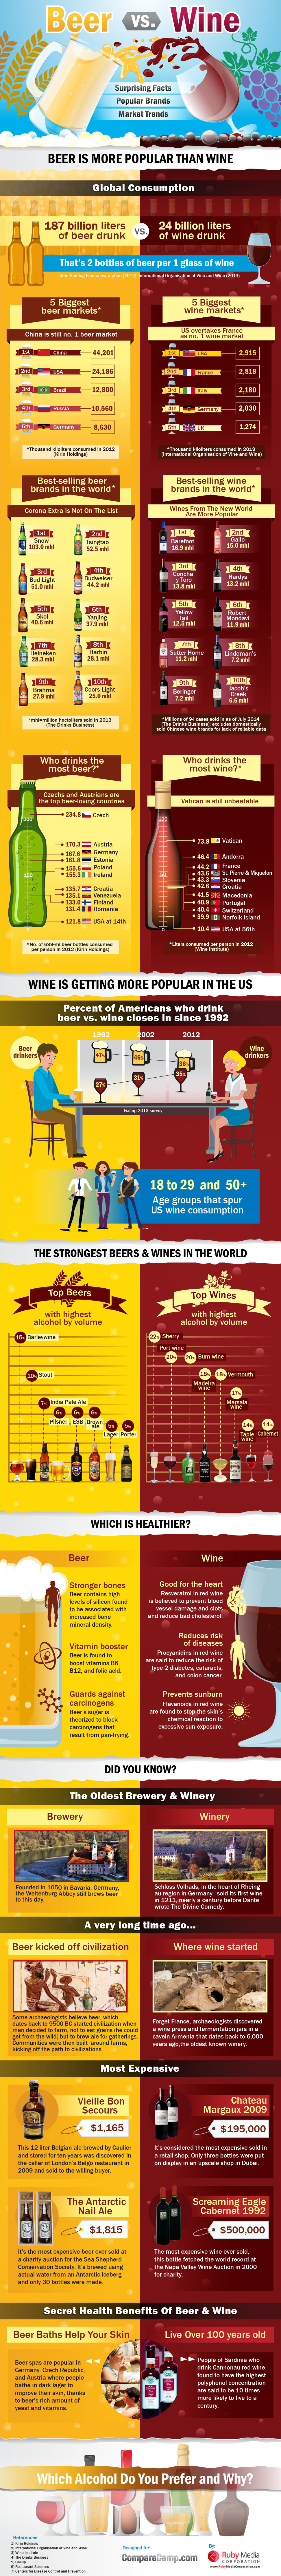 Comparison Of Wine And Beer: Industry Statistics, Fun Facts & The Most Popular Brands